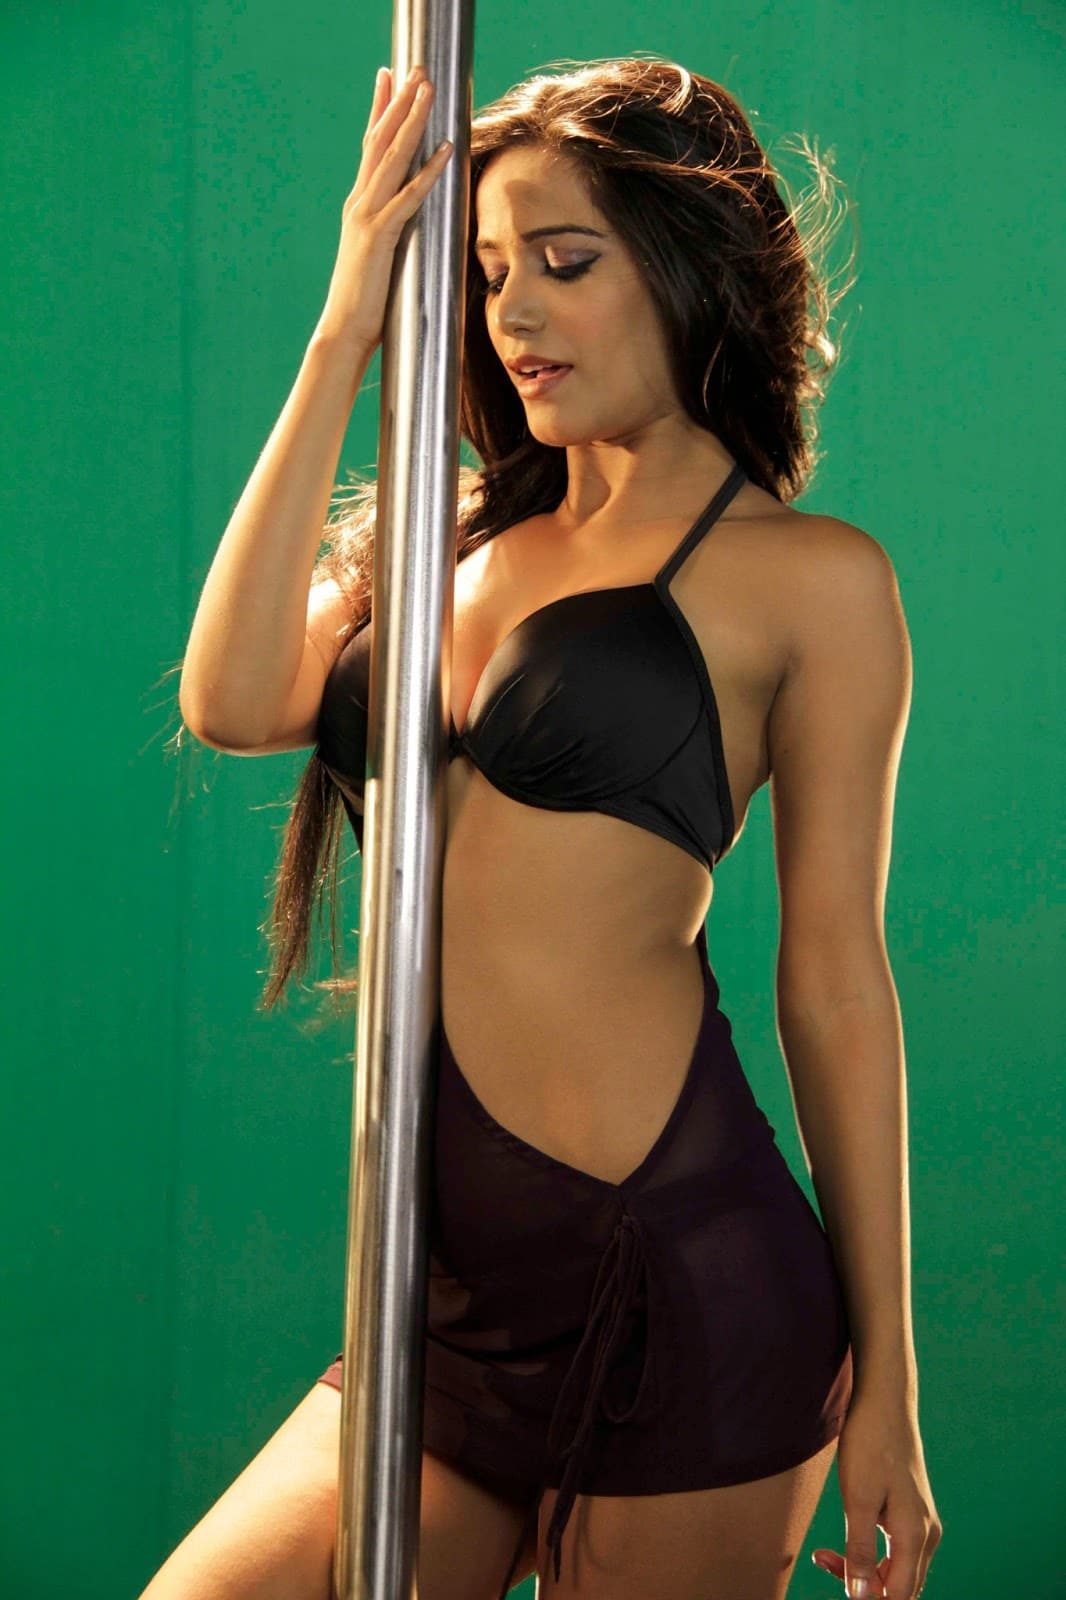 Bollywood actress Poonam Pandey with a stripper pole